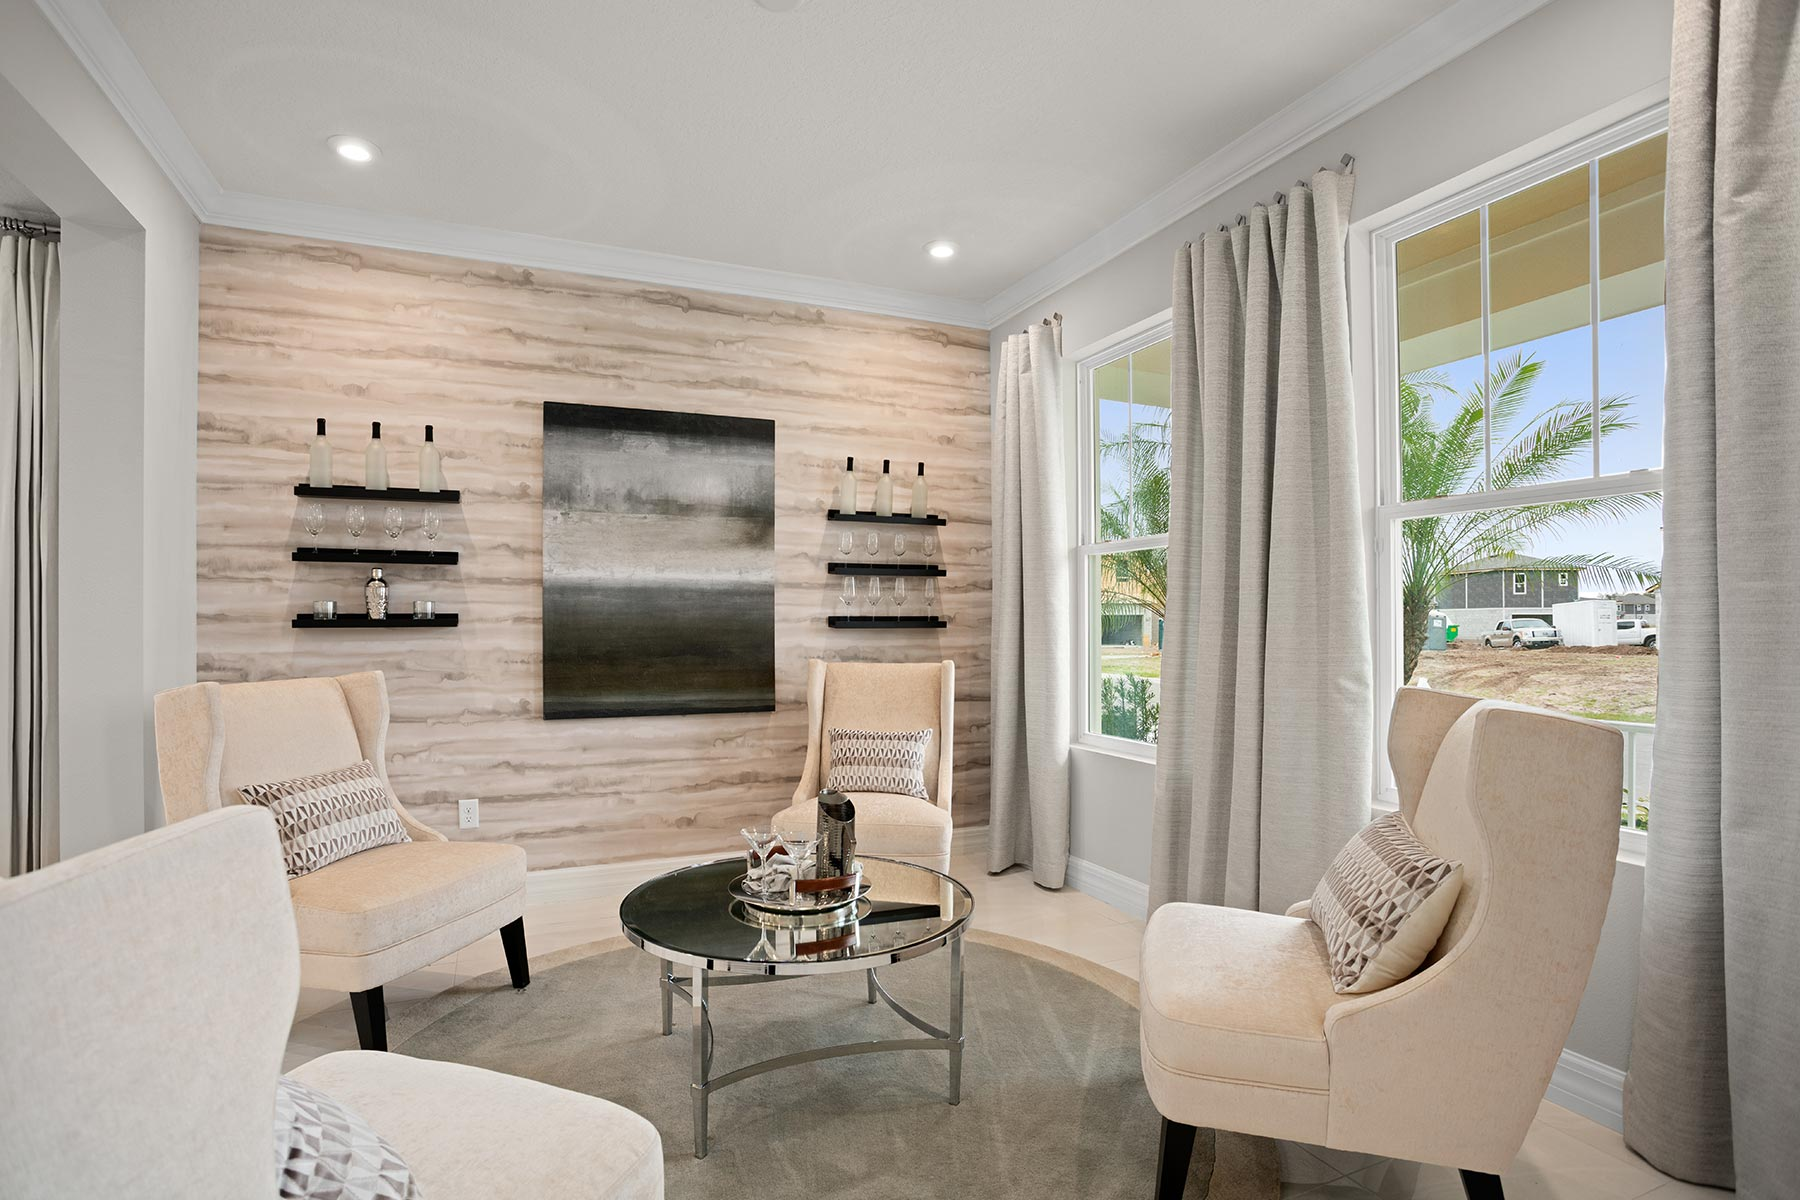 Winthrop Plan Recreation Room at Tapestry in Kissimmee Florida by Mattamy Homes